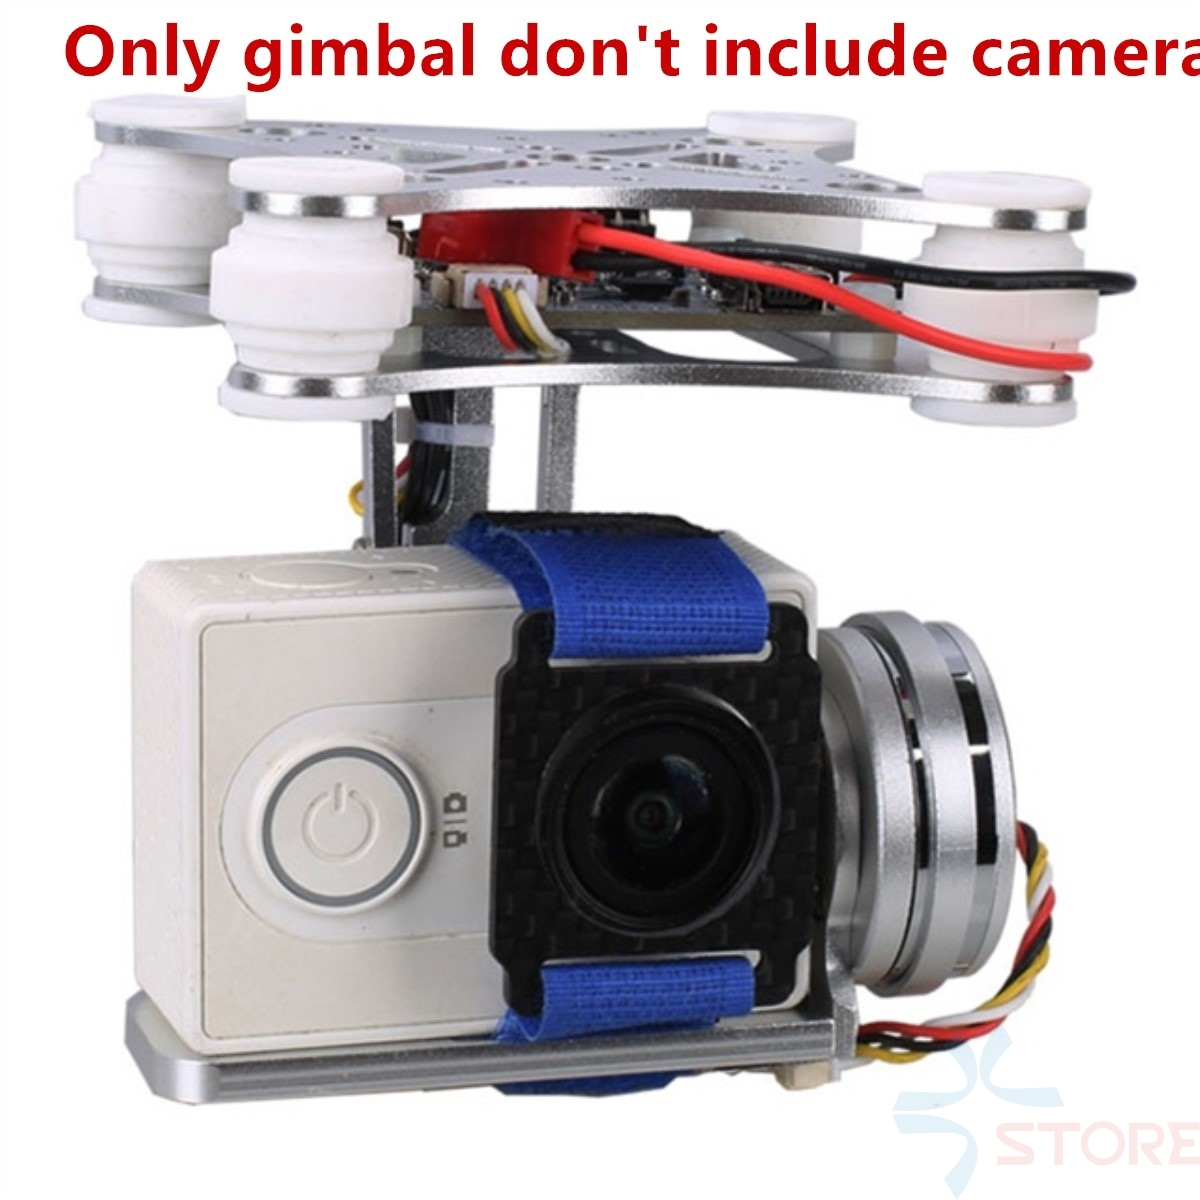 2 Aixs 2D Brushless Camera Gimbal for Gopro SJCAM XIAOMI YI Action Camera Eken F450 F550 S500 FPV Drone Multirotor Quadrocopter свитер женский billabong dance with me off black